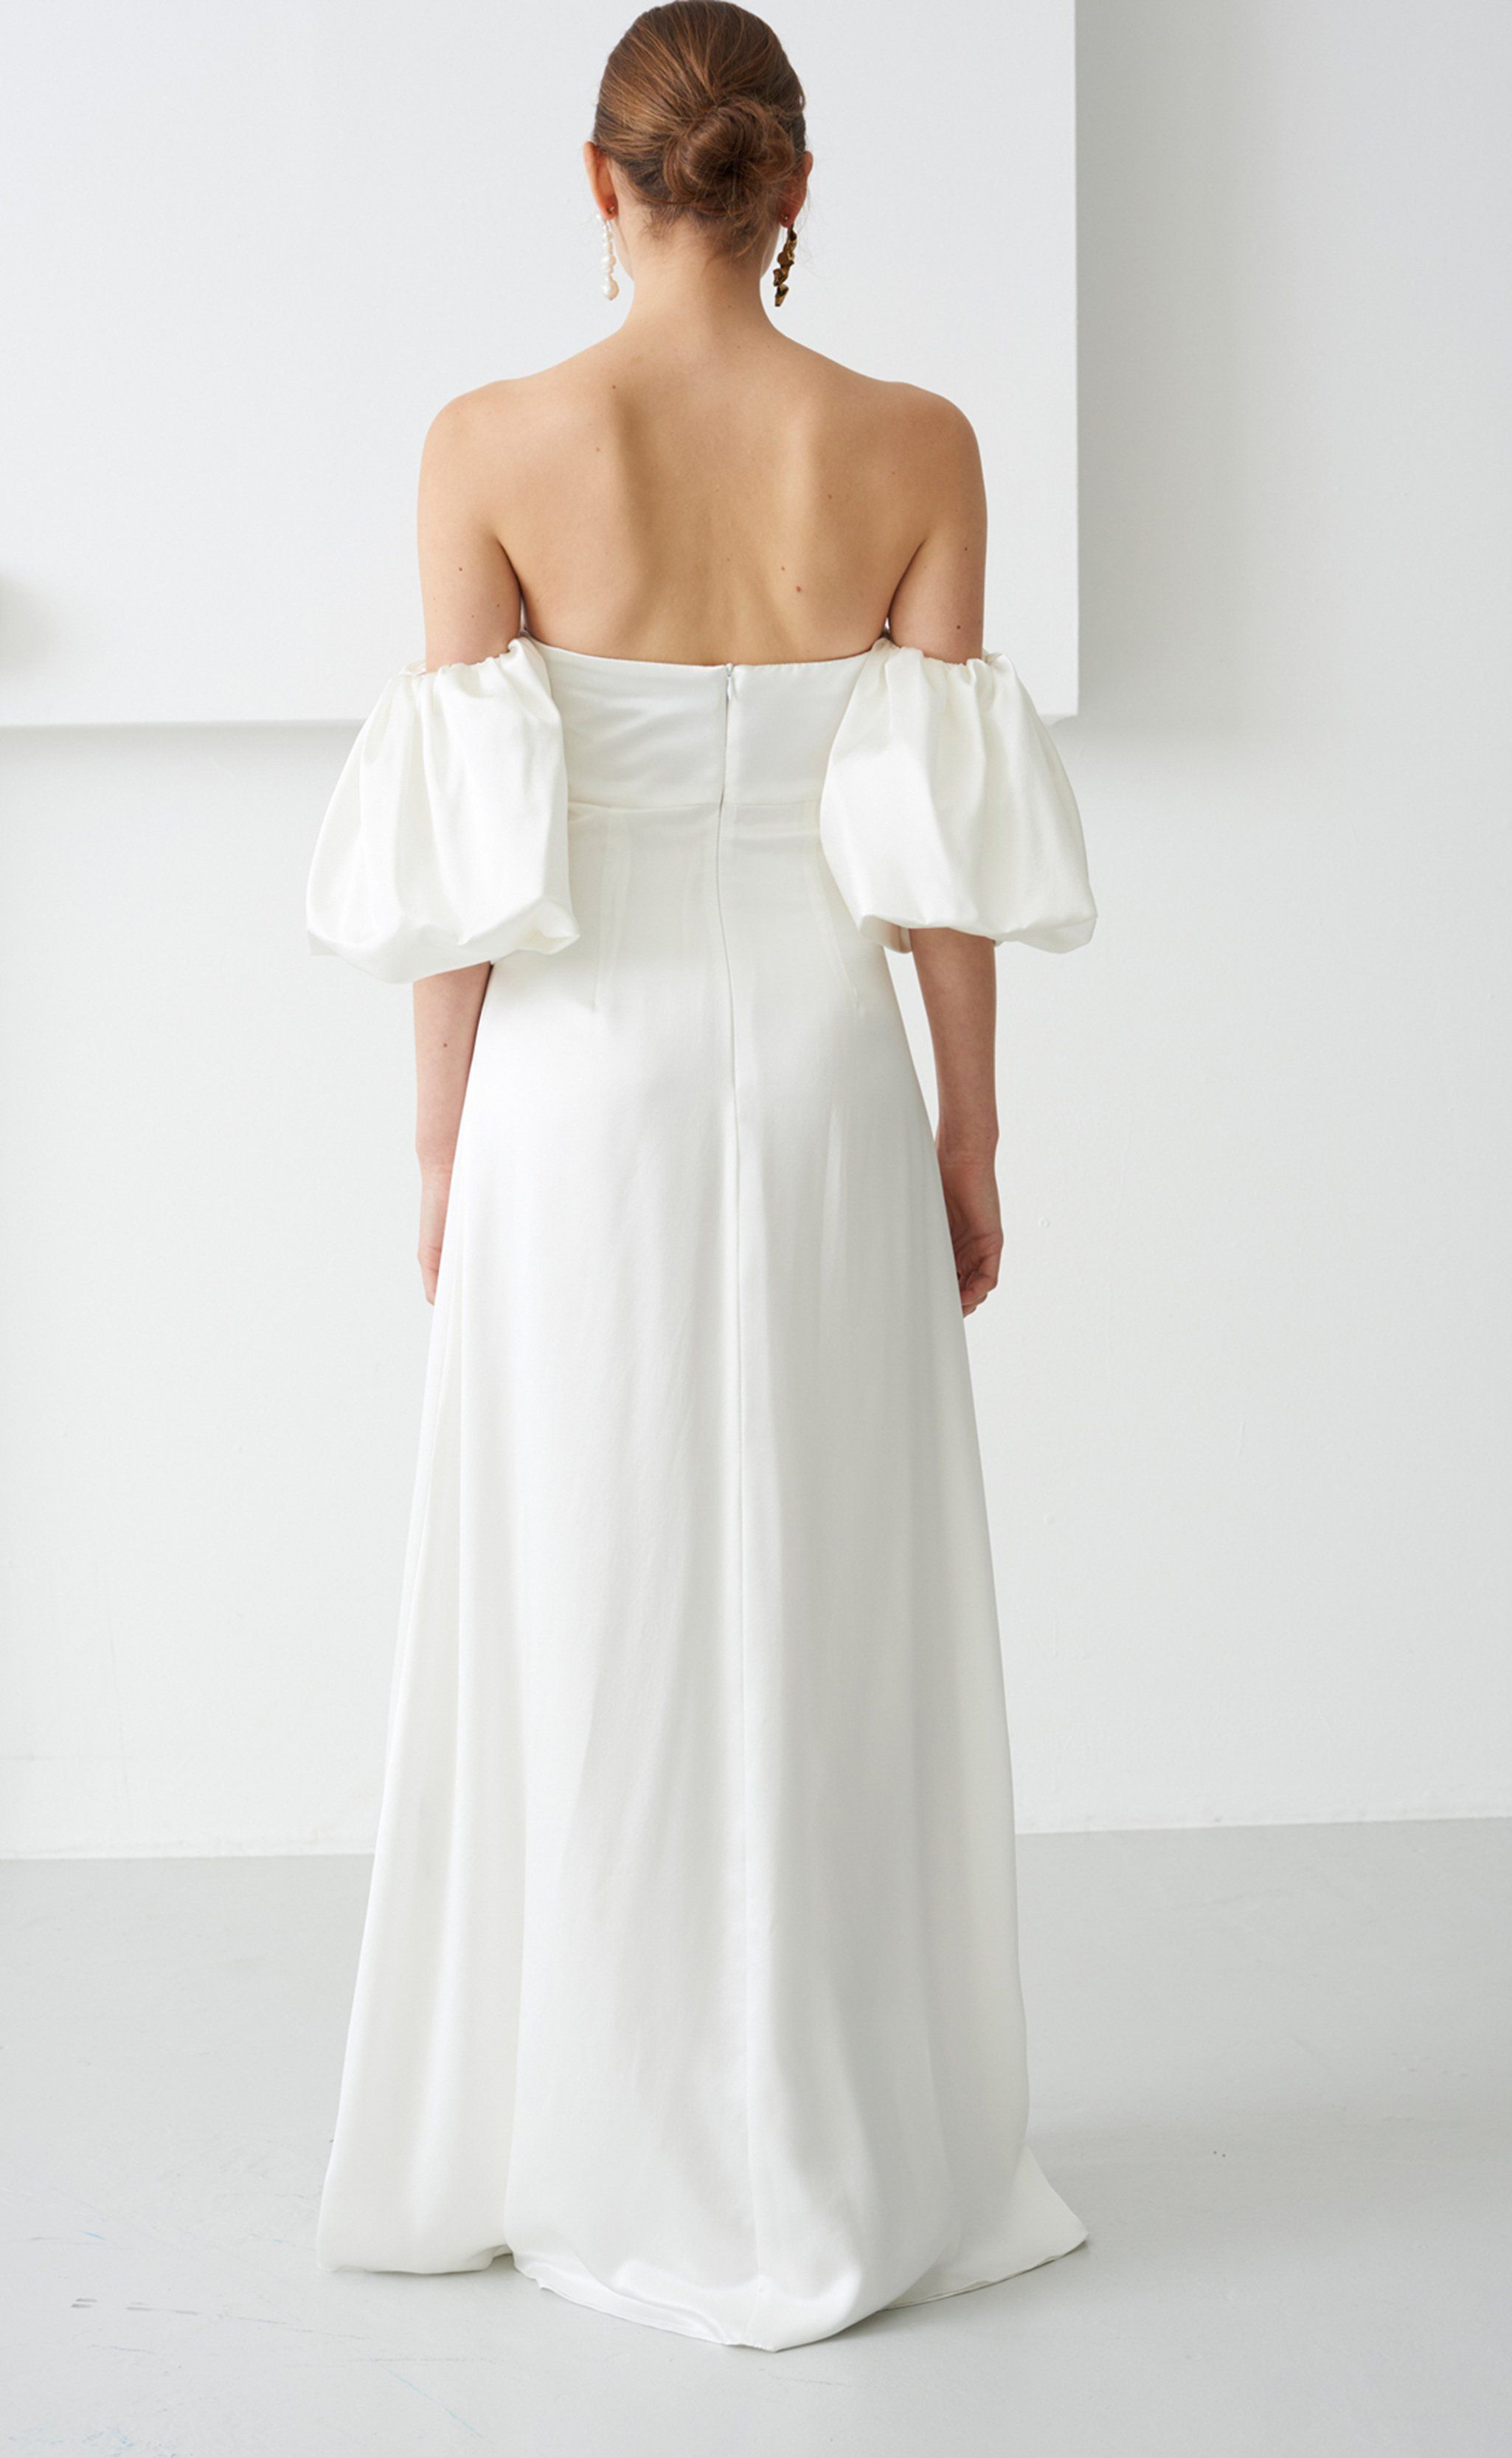 CAMILLA IVORY DRESS in 2020 Dresses, Ivory dresses